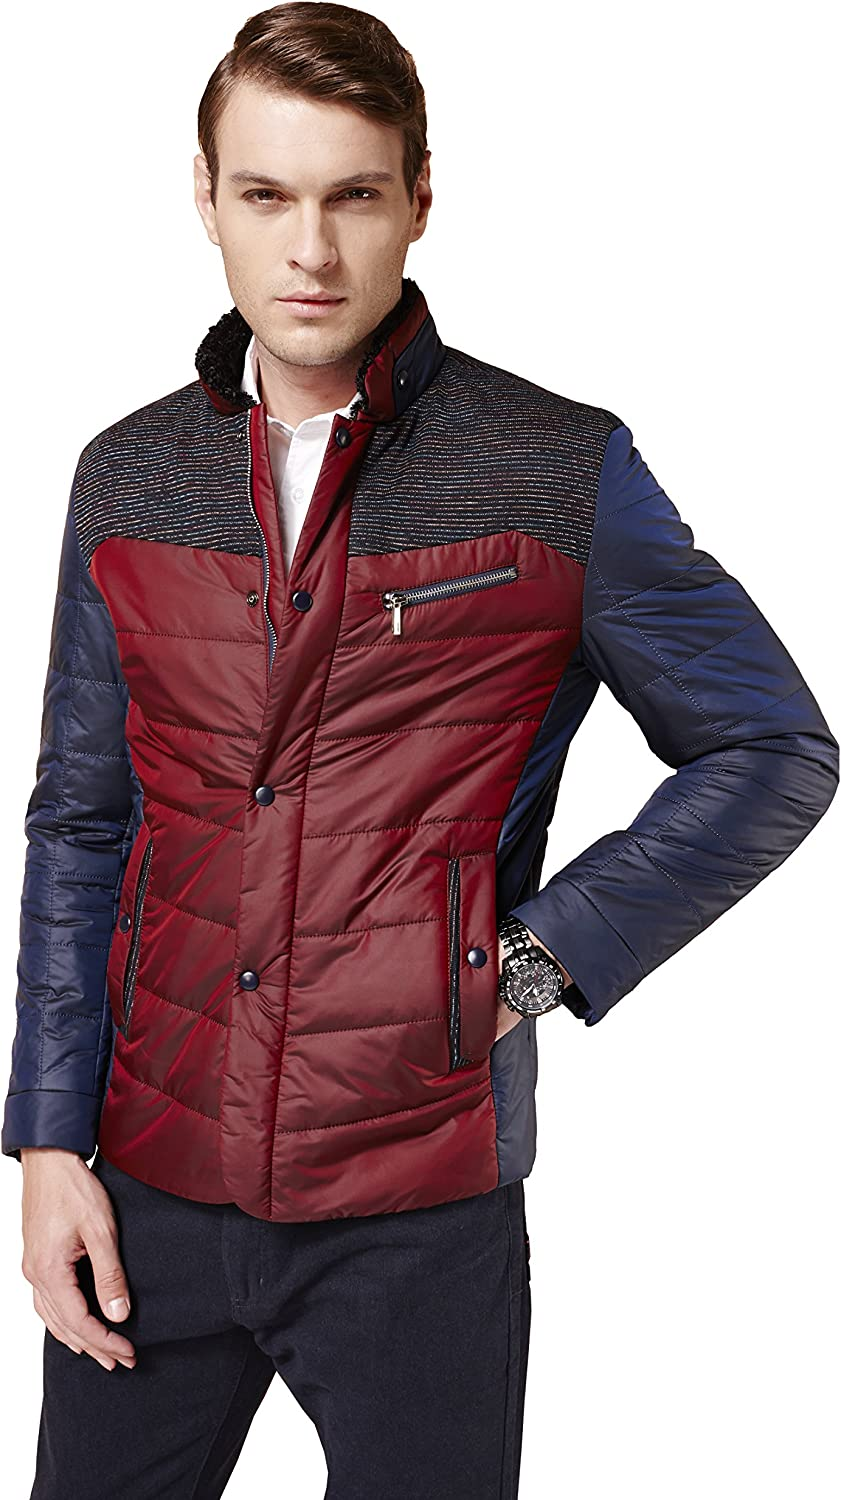 Philadelphia Mall Colorfulworldstore Men's Business Casual Cotton Padded Co Jacket Inexpensive